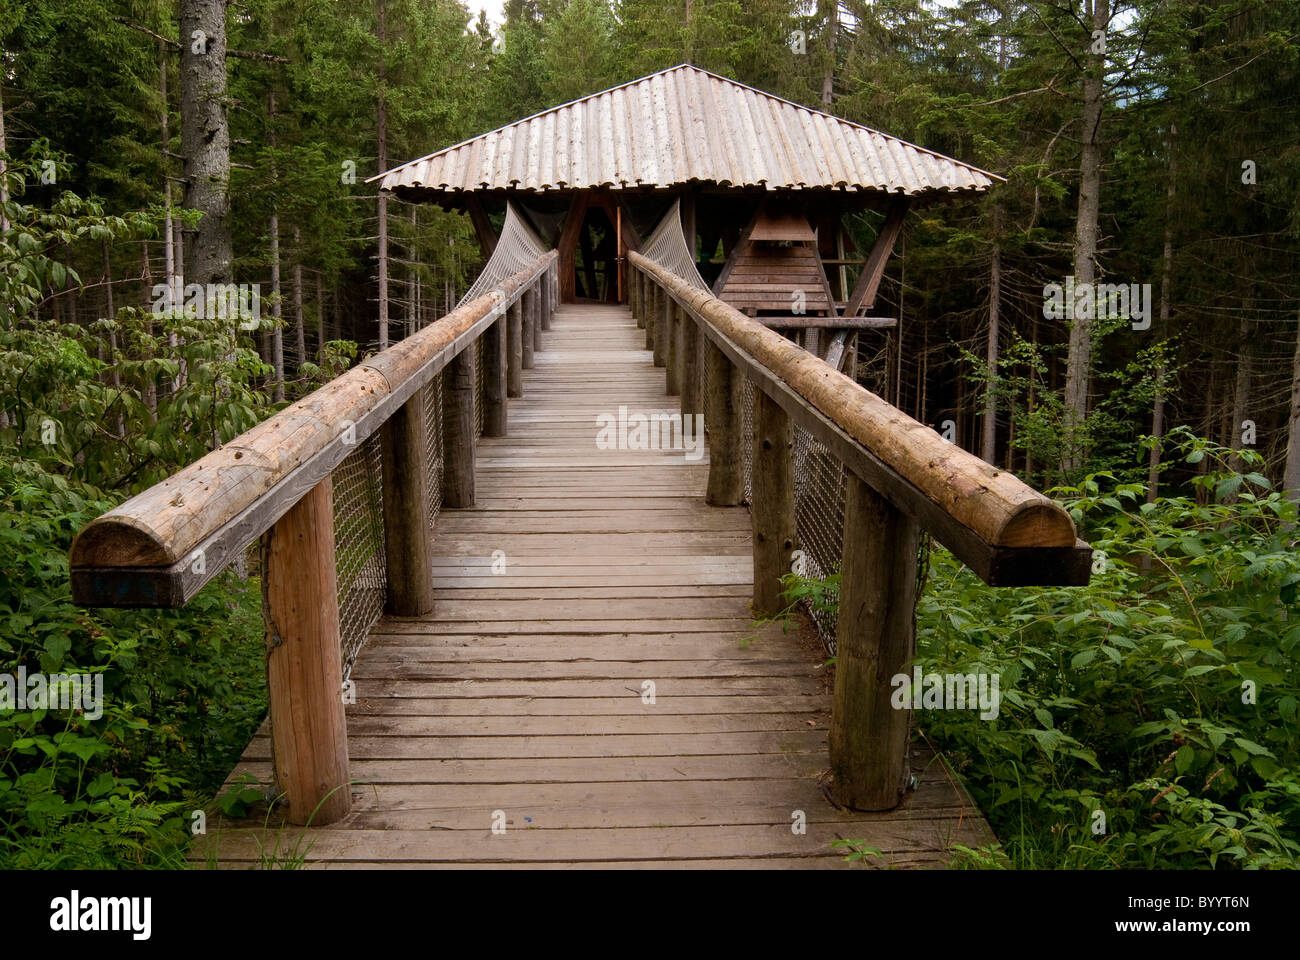 Topic hut at Falkenstein Wilderness Camp, Bavarian Forest National Park, Bavaria, Germany. - Stock Image